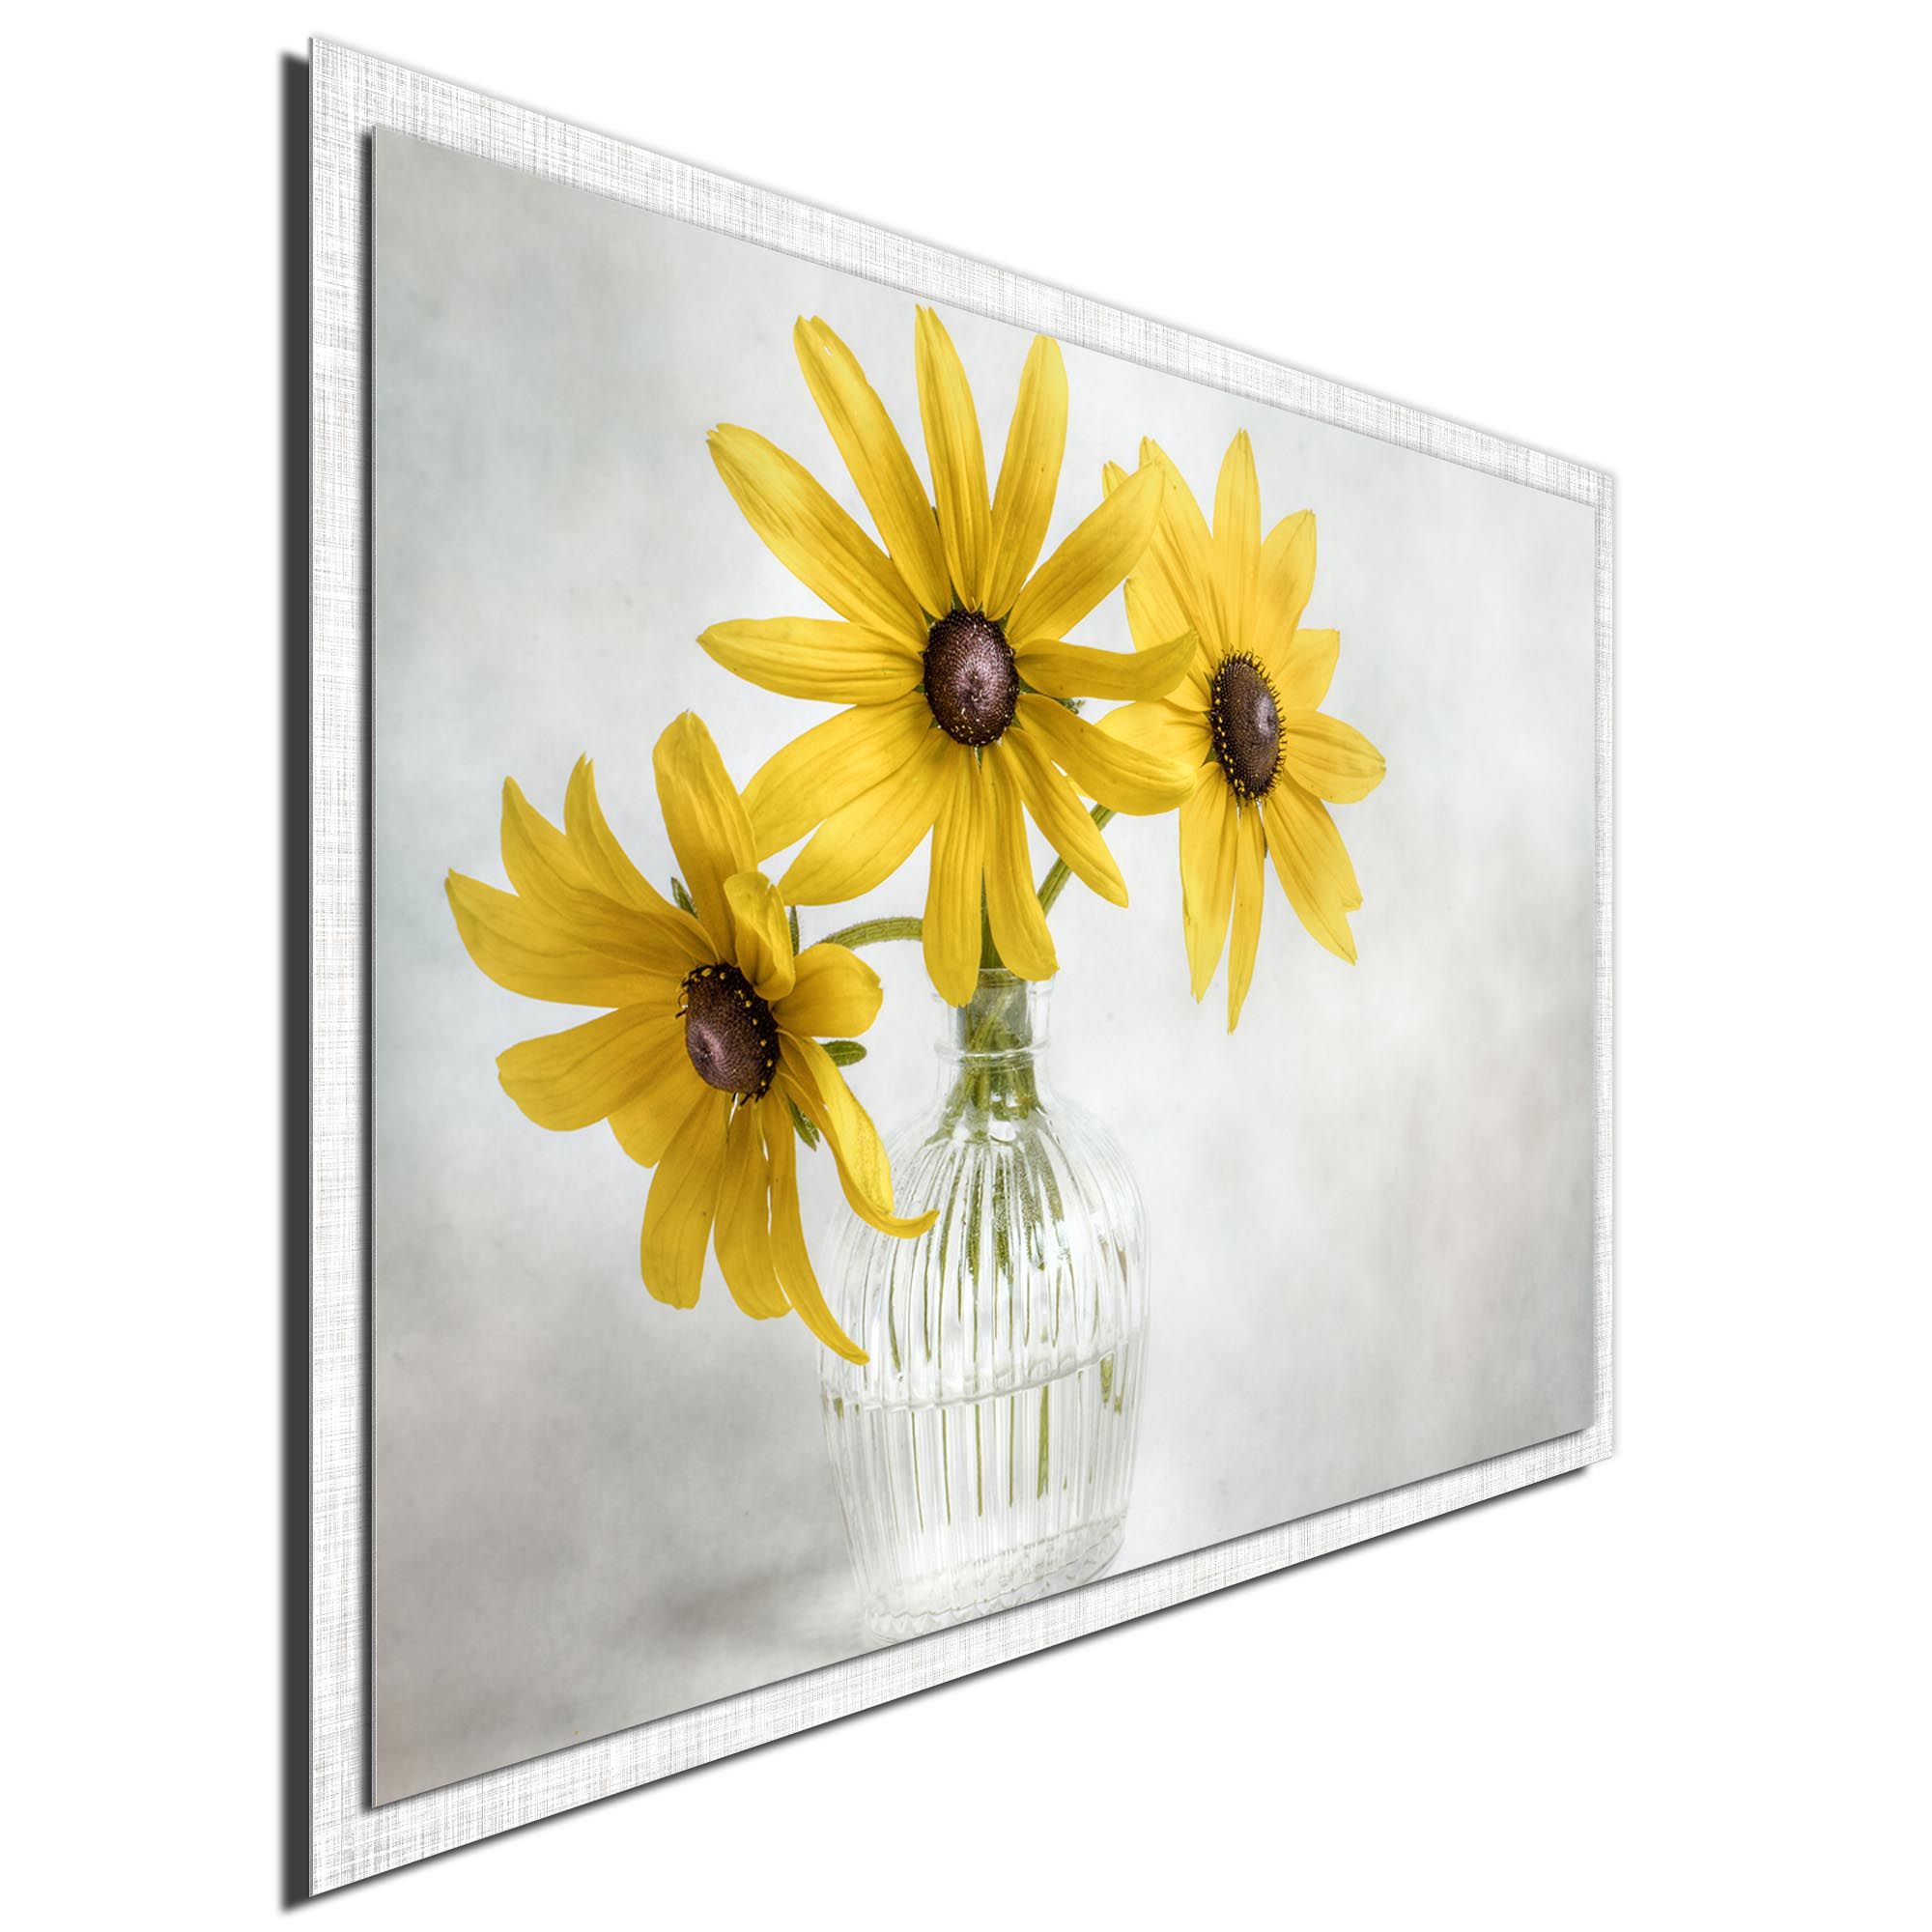 Rudbeckia by Mandy Disher - Modern Farmhouse Floral on Metal - Image 2